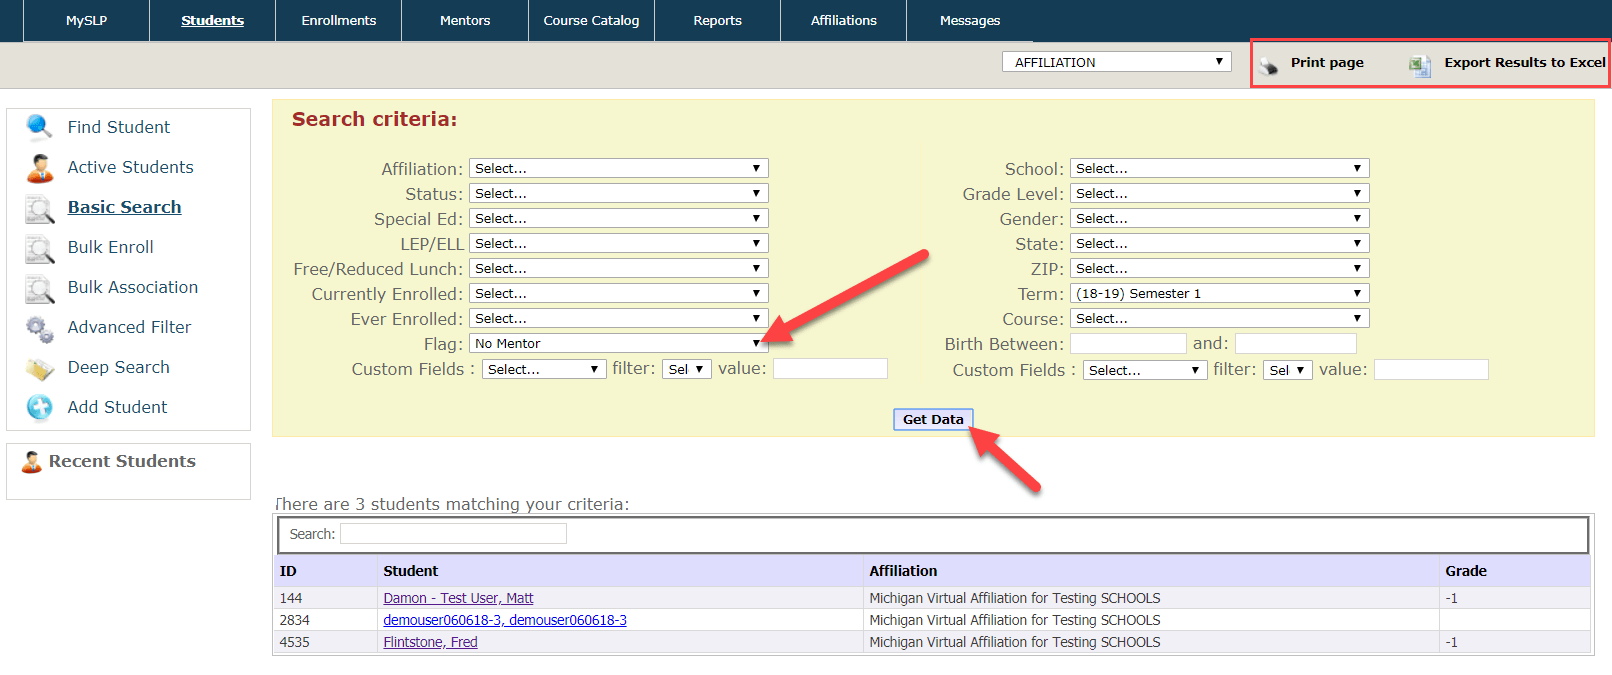 The Basic Search page is displayed showing the fields mentioned above. Arrows point to the Flag drop-down field and to the Get Data button. The Print page and Export Results to Excel buttons are highlighted with a red box surrounding it.